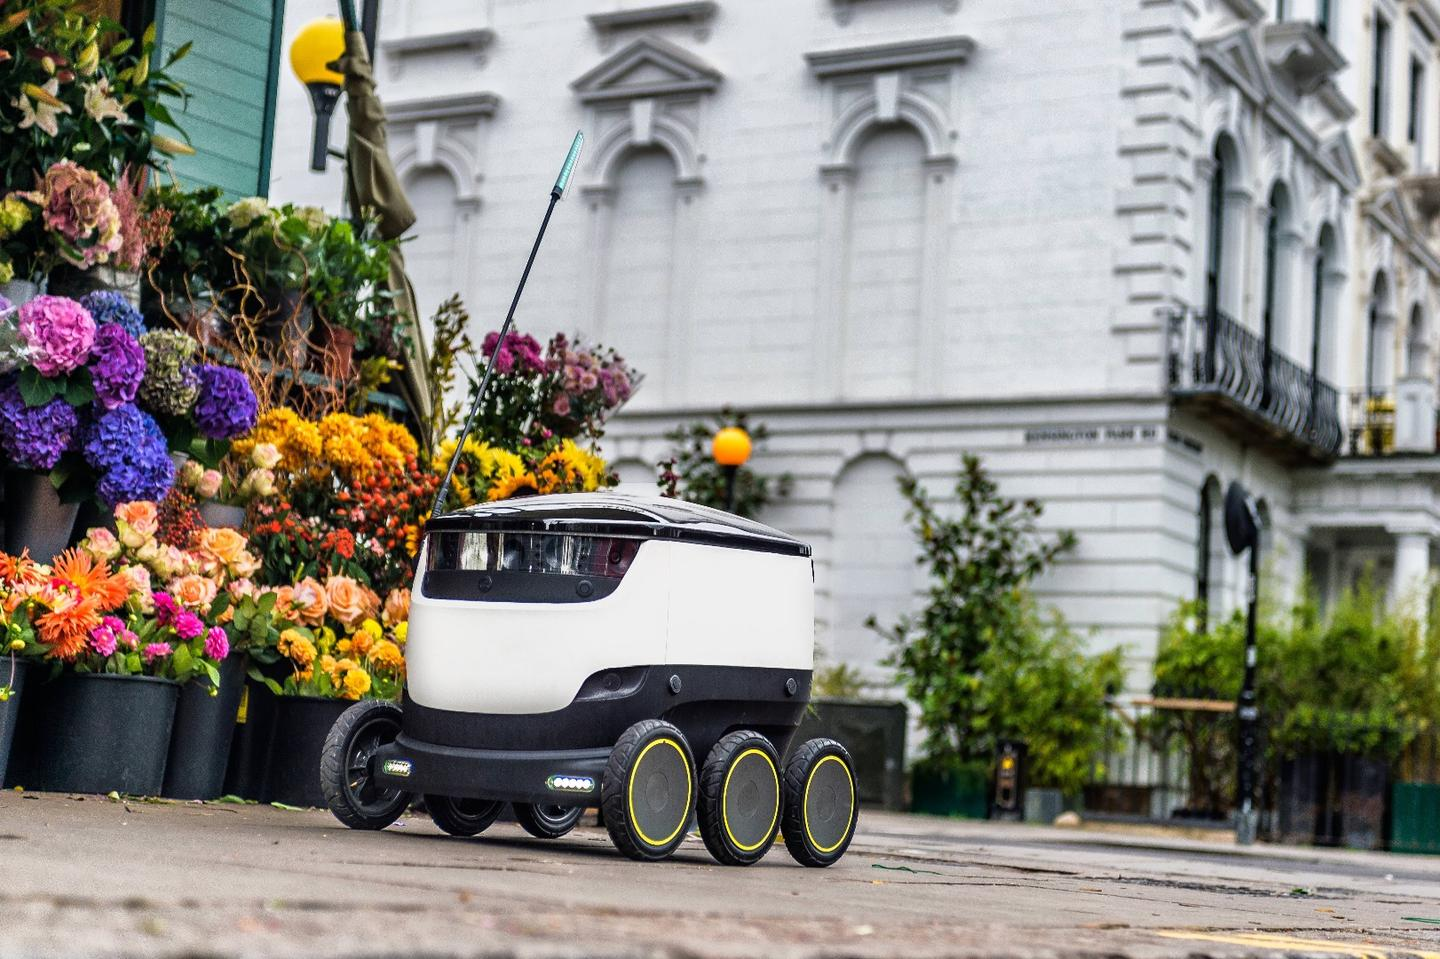 Starship's robots have been tested as part of food delivery pilots in the UK, Germany and Netherlands, along with other trials in Estonia and Switzerland